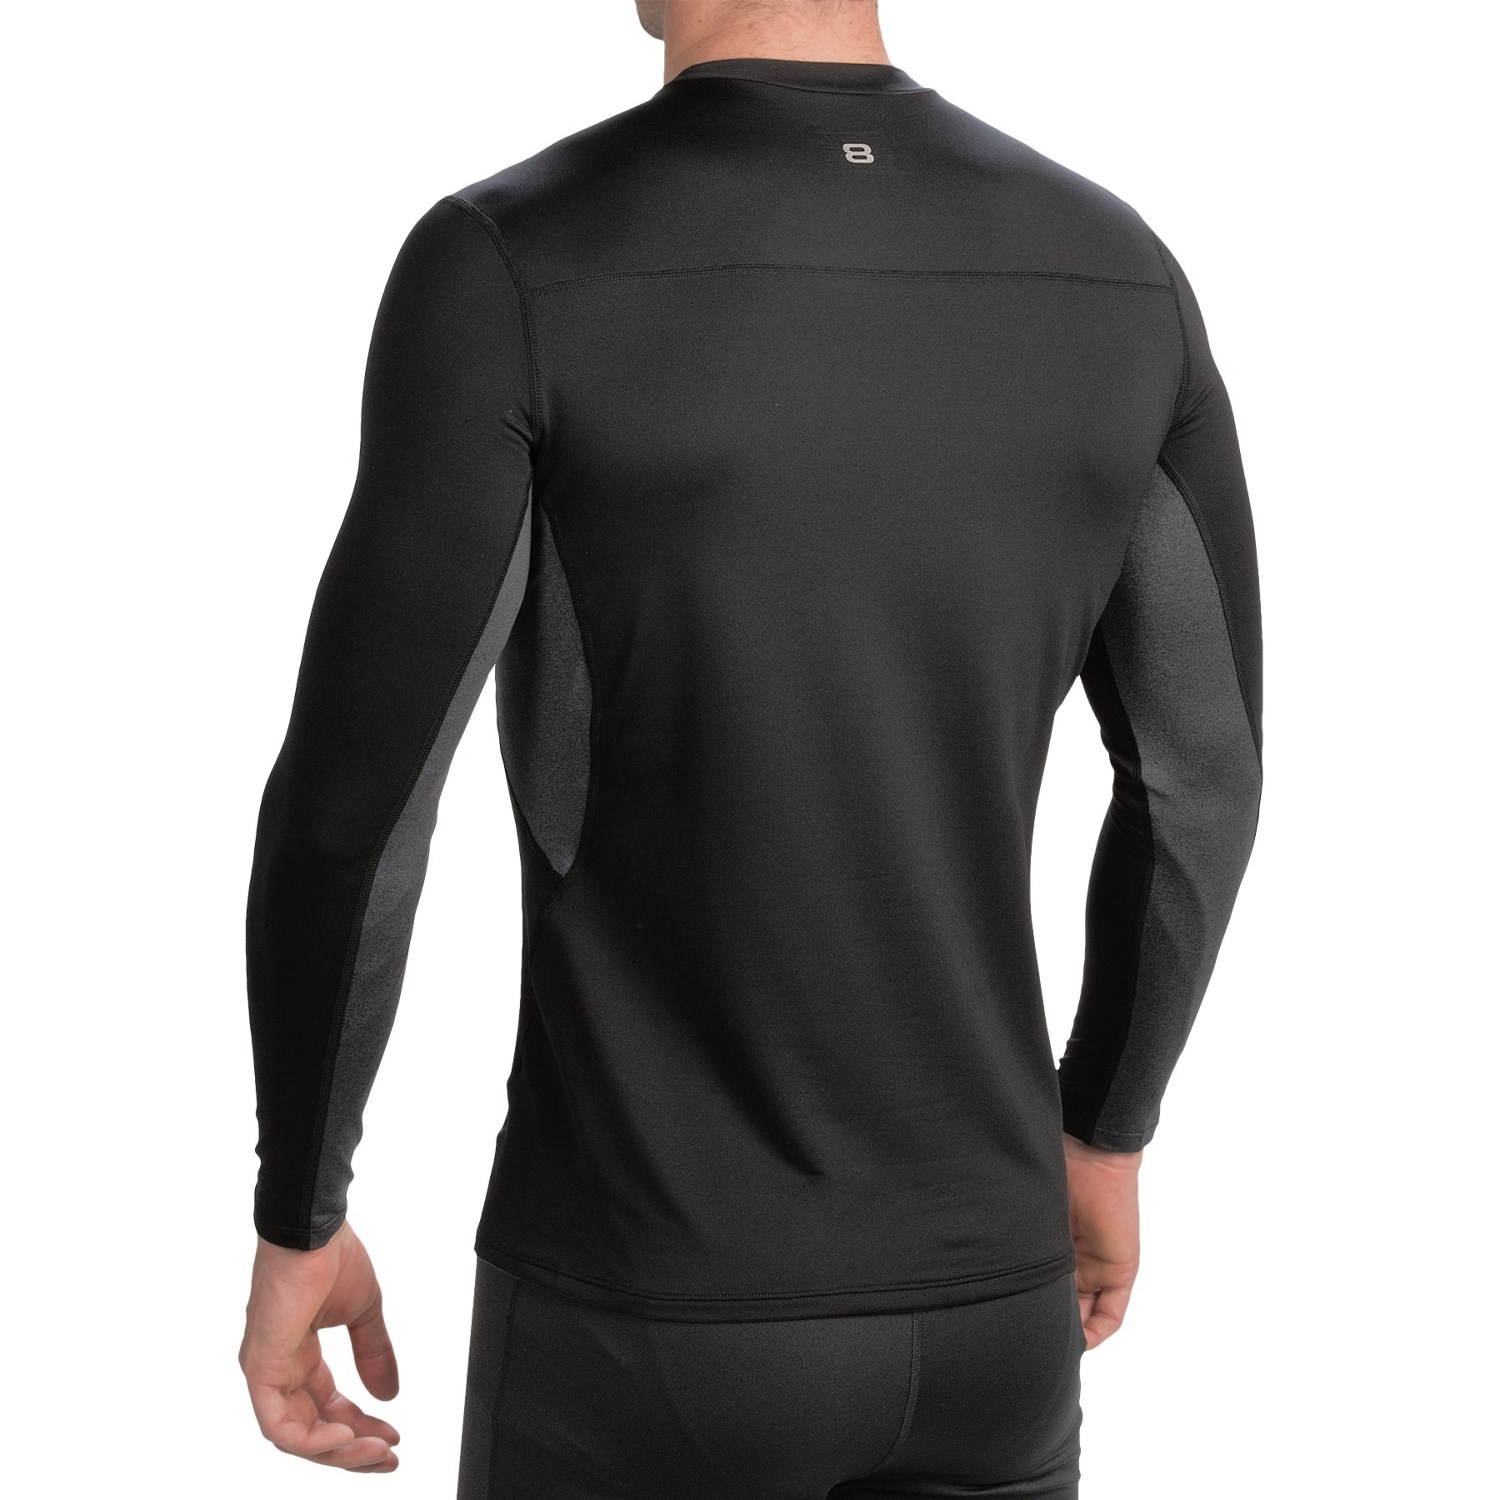 Layer 8 Stretch Base Layer Top (For Men) - Save 50%